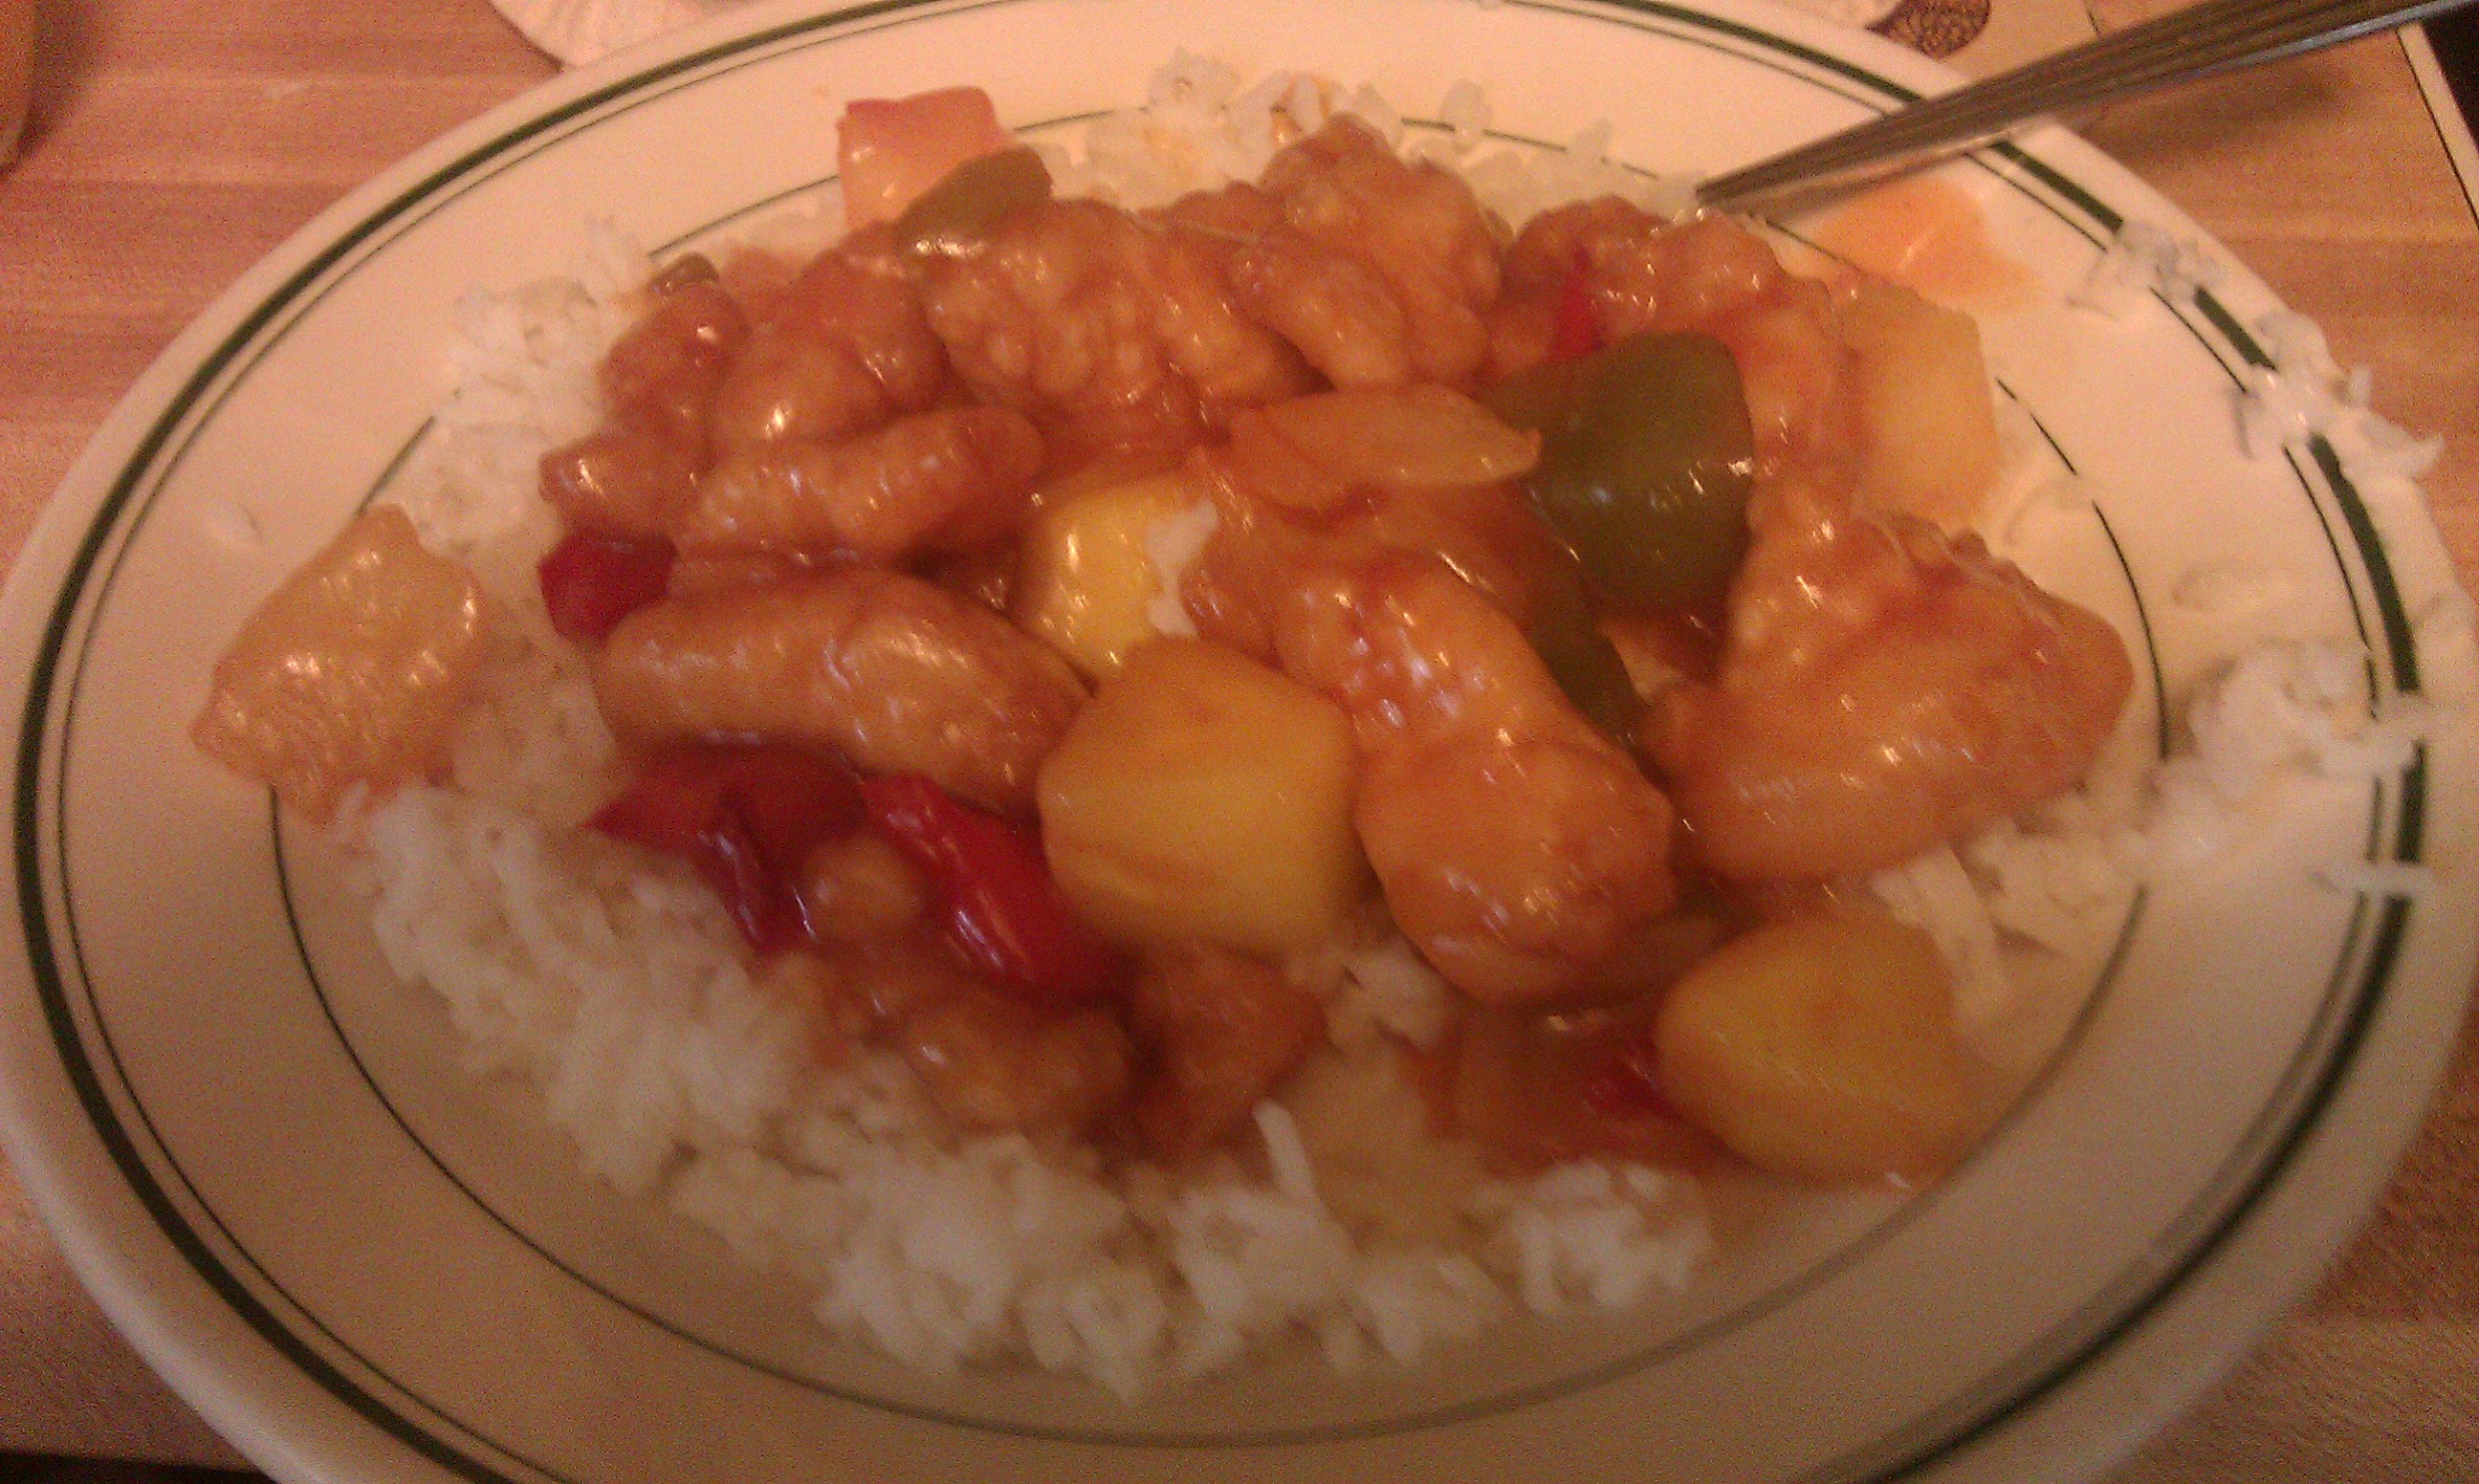 http://foodloader.net/t0xik_2012-05-10_P.F._Changs_Sweet_and_Sour_Chicken.jpg